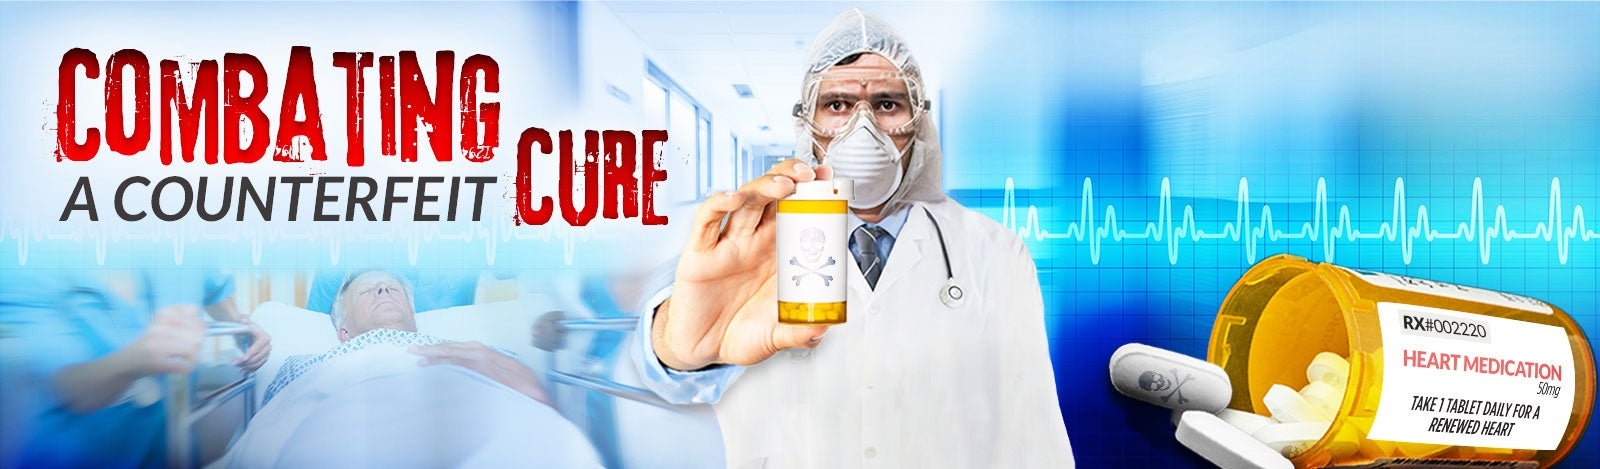 Combating the Counterfeit Cure